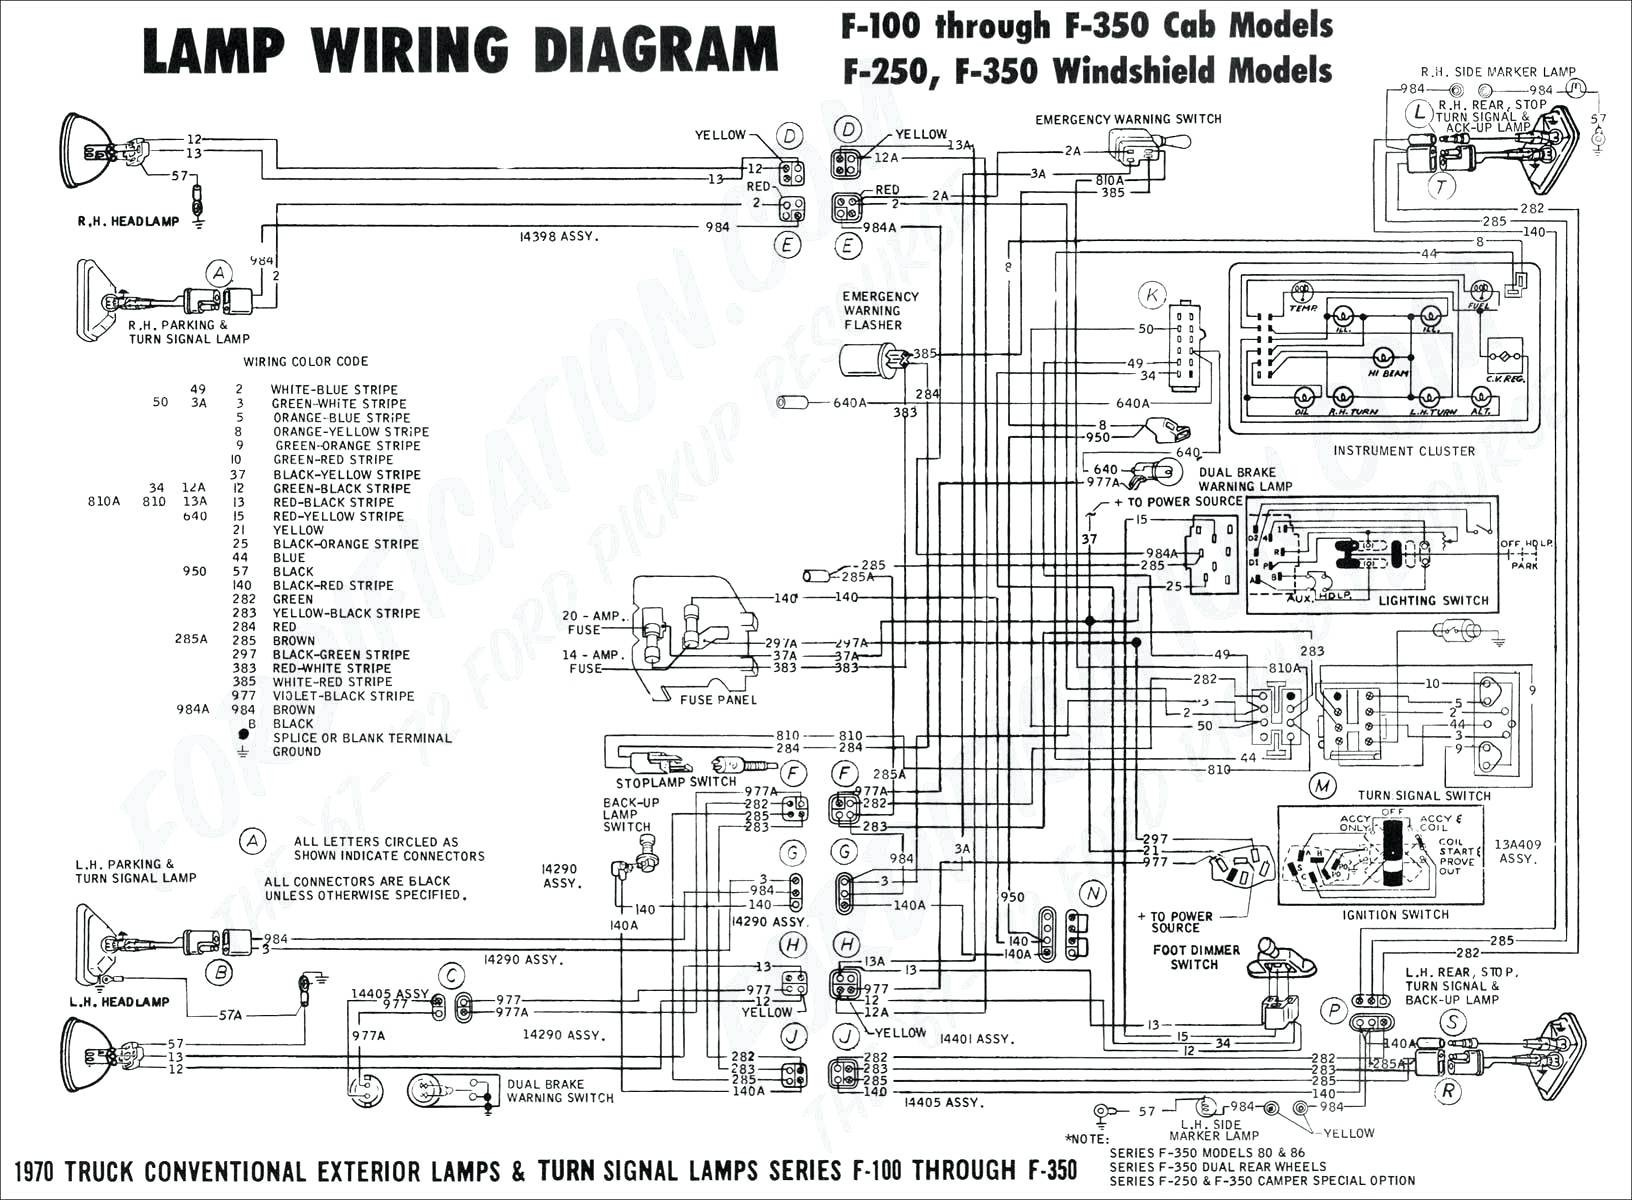 2000 Lincoln Ls V8 Engine Diagram 2000 Lincoln Ls Radio Wiring Diagram Worksheet and Wiring Diagram • Of 2000 Lincoln Ls V8 Engine Diagram Lincoln Continental Engine Diagram Worksheet and Wiring Diagram •